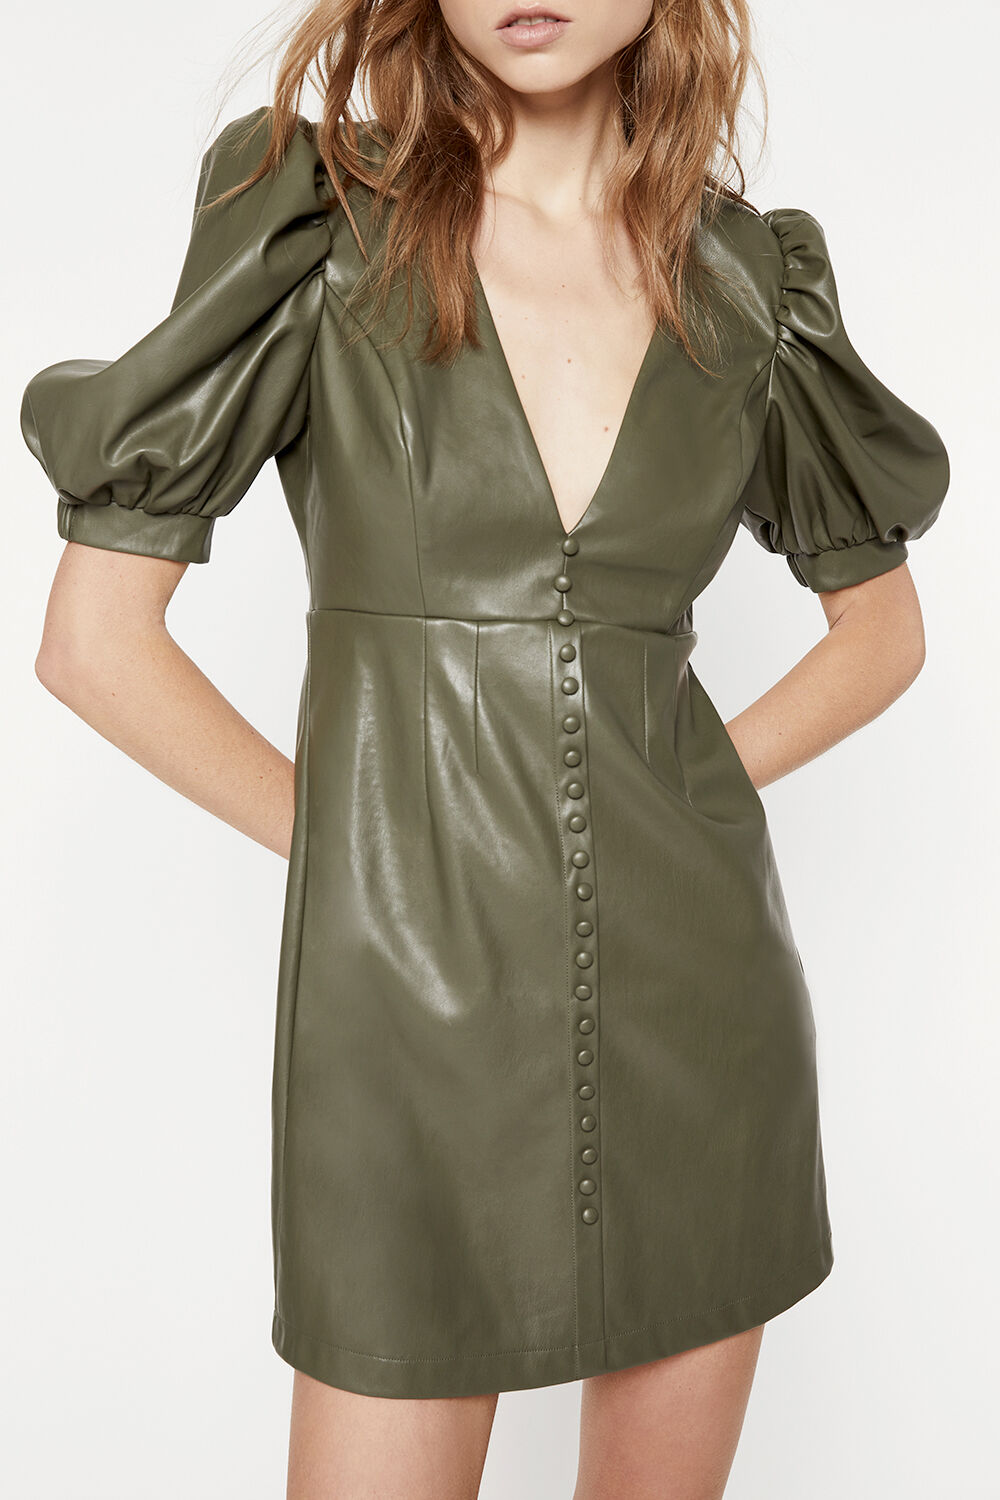 HARTLEY MINI DRESS in colour IVY GREEN